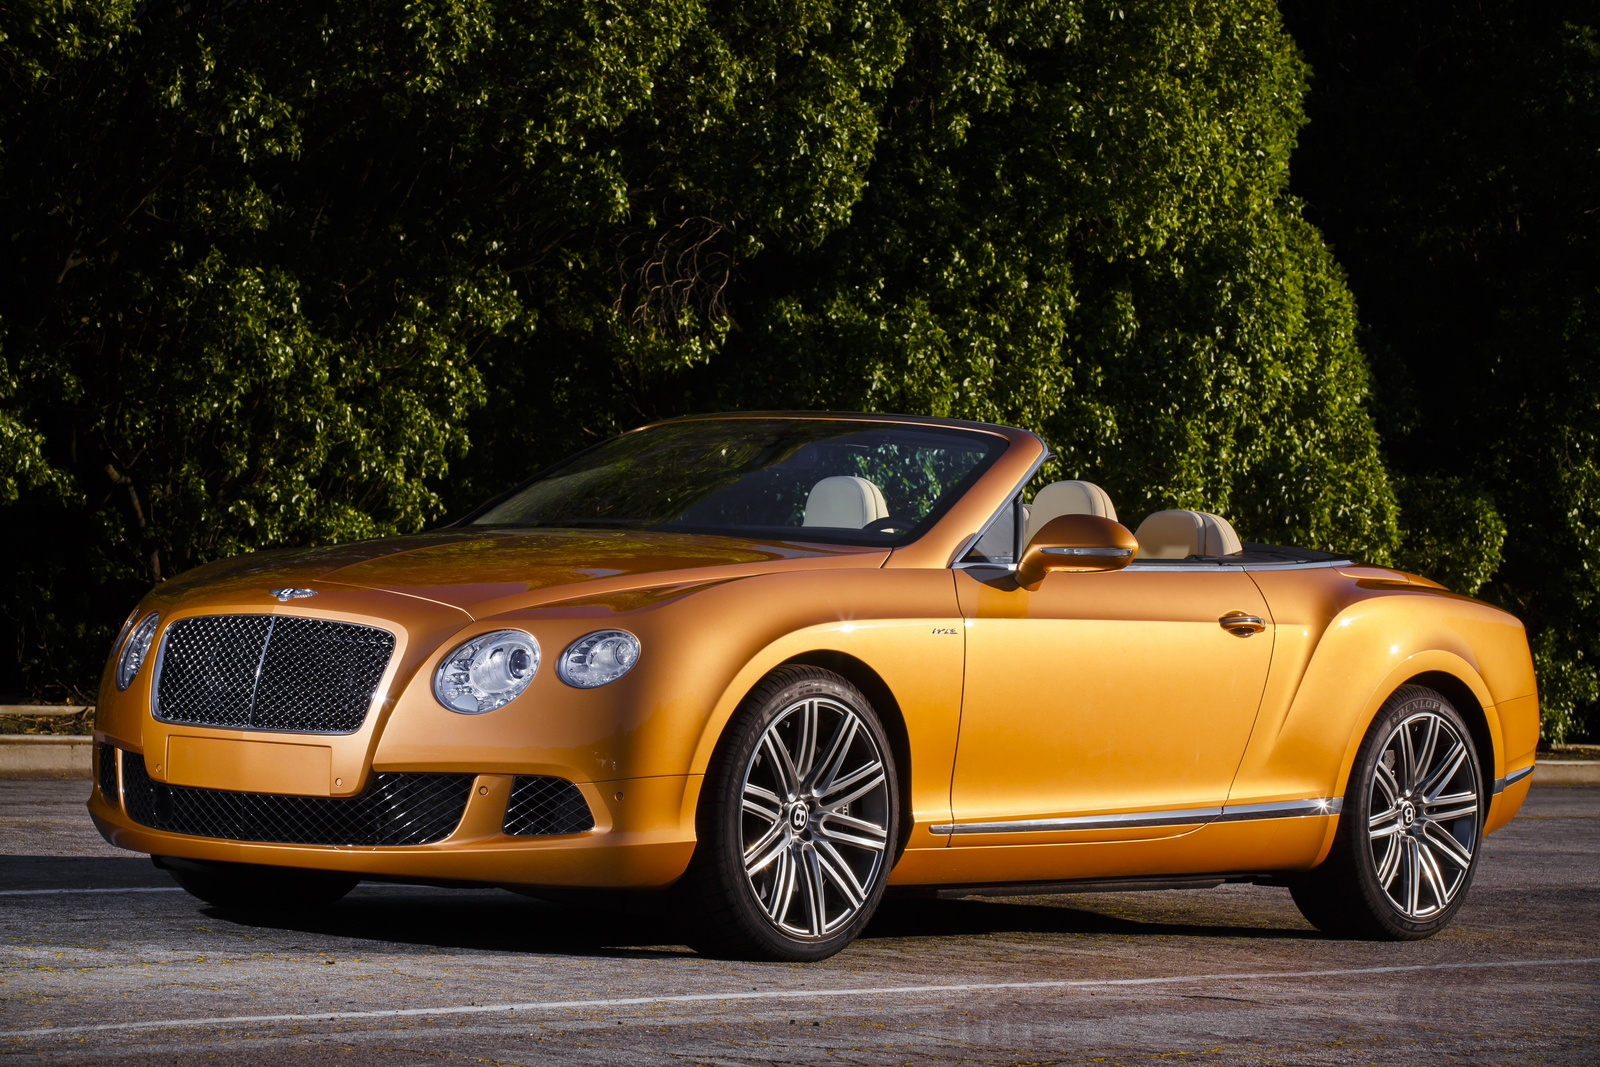 2014 bentley continental gtc prices specs reviews auto design tech. Cars Review. Best American Auto & Cars Review